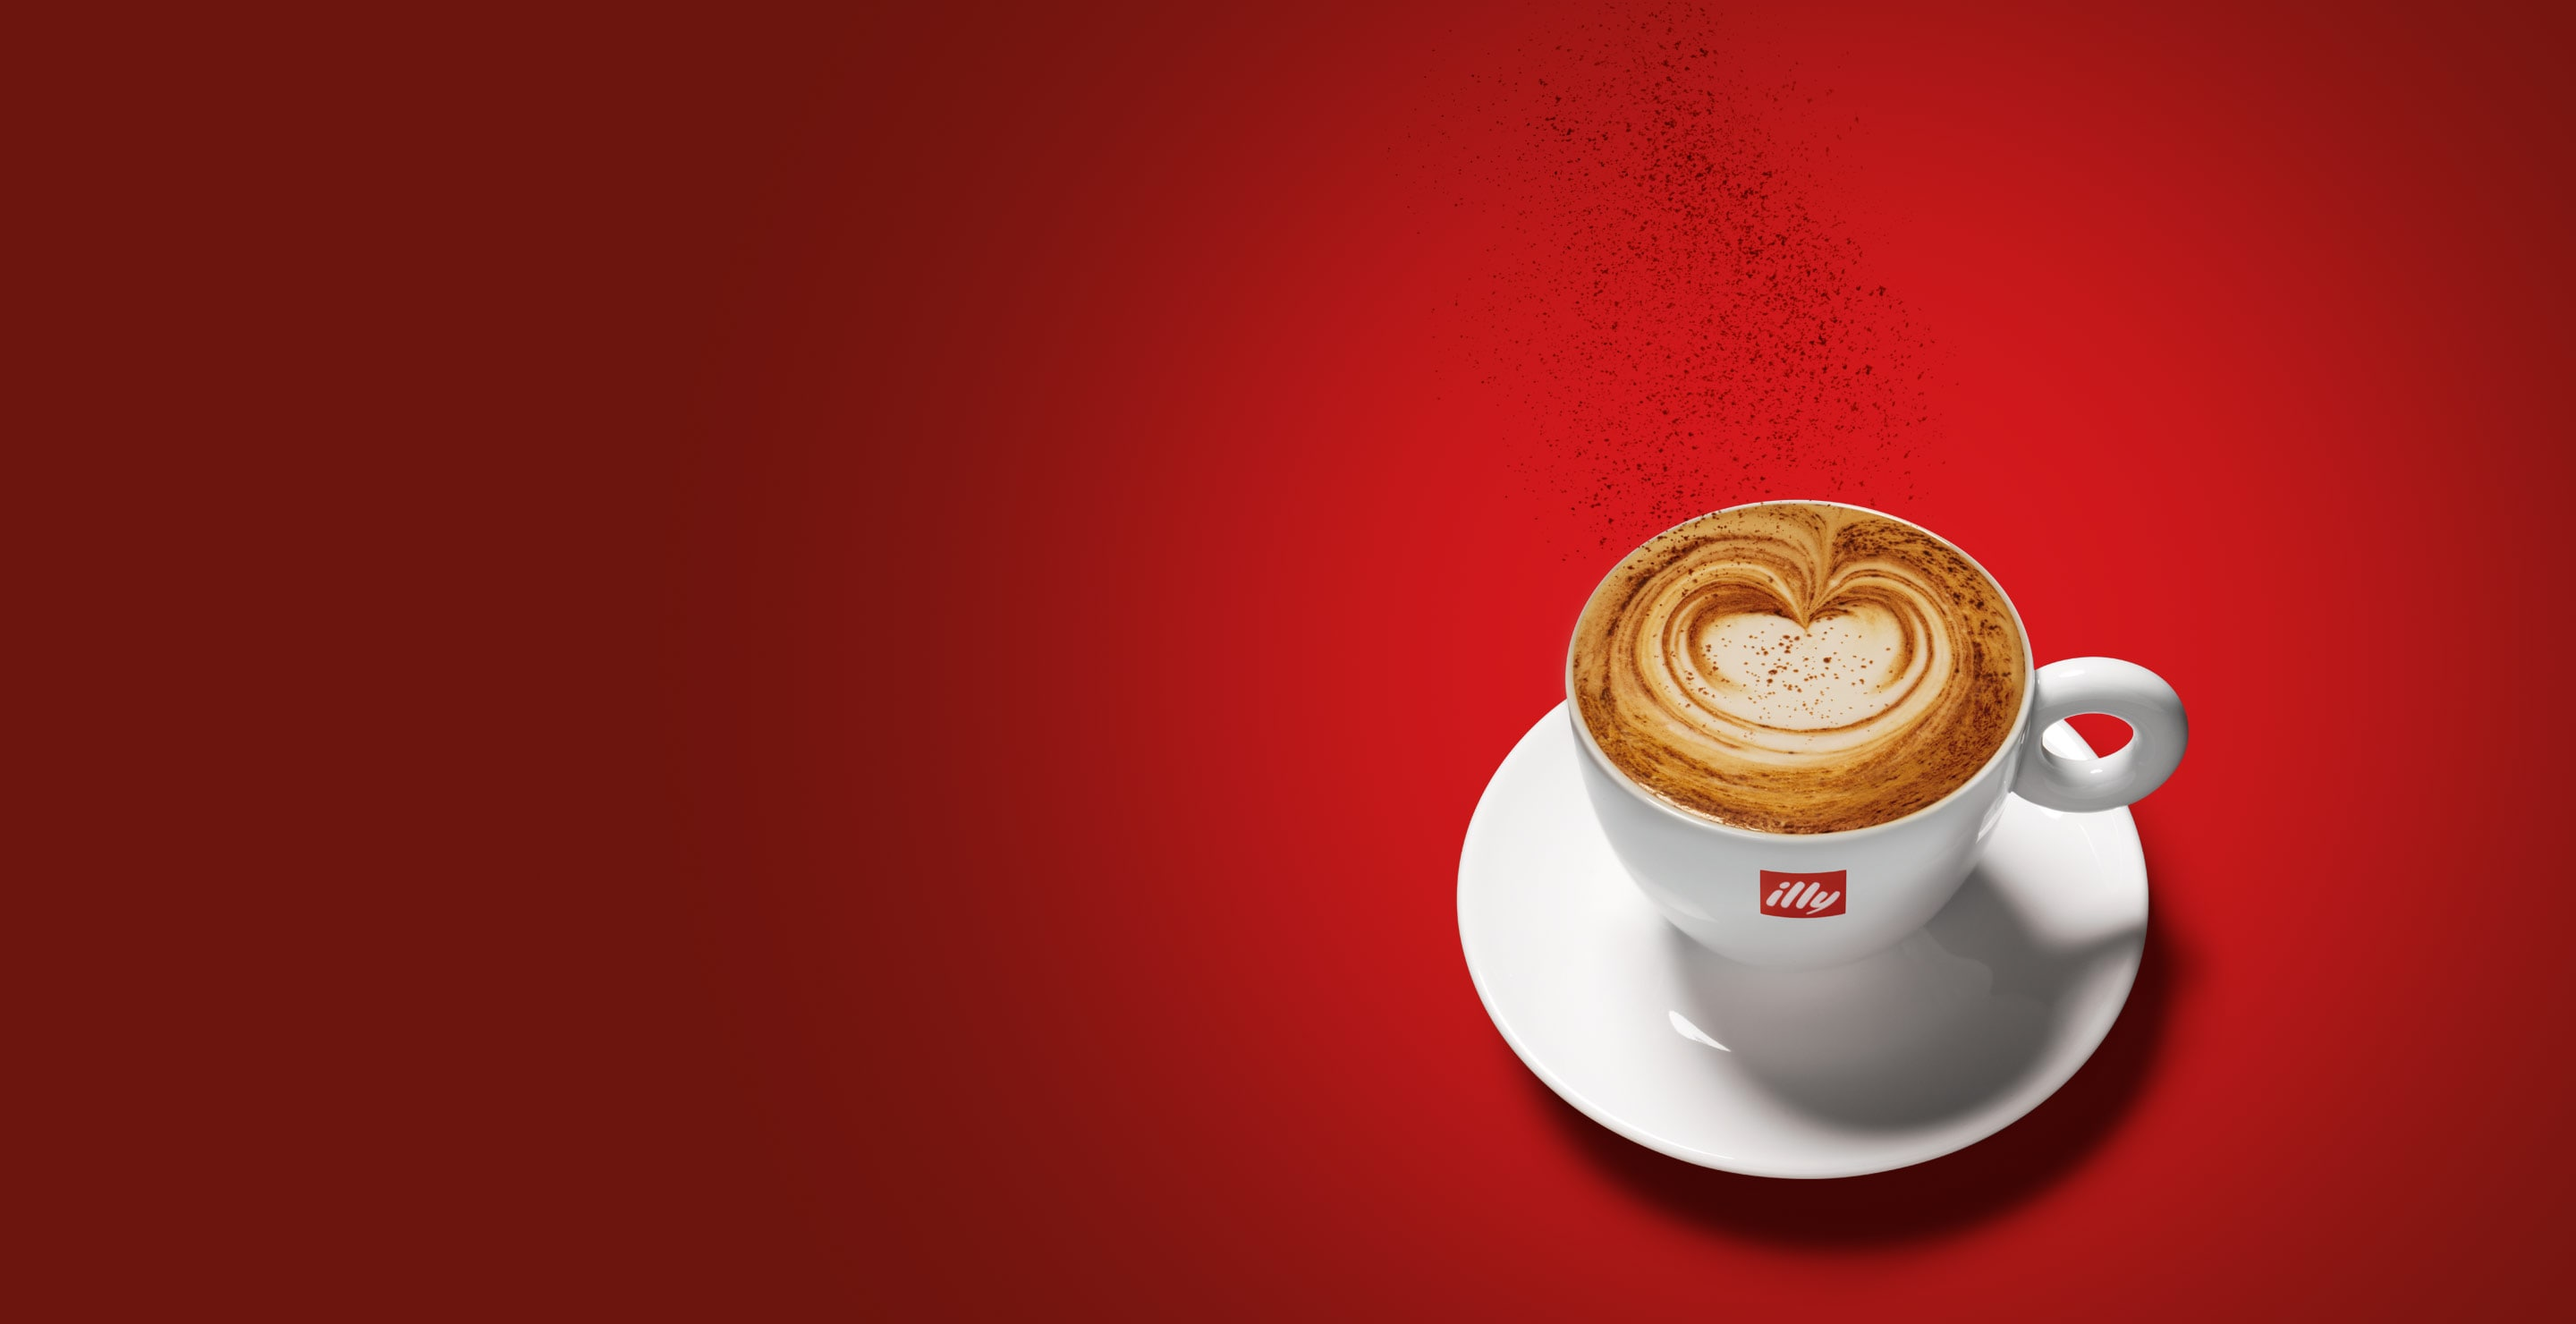 illy cappuccino in logo cup